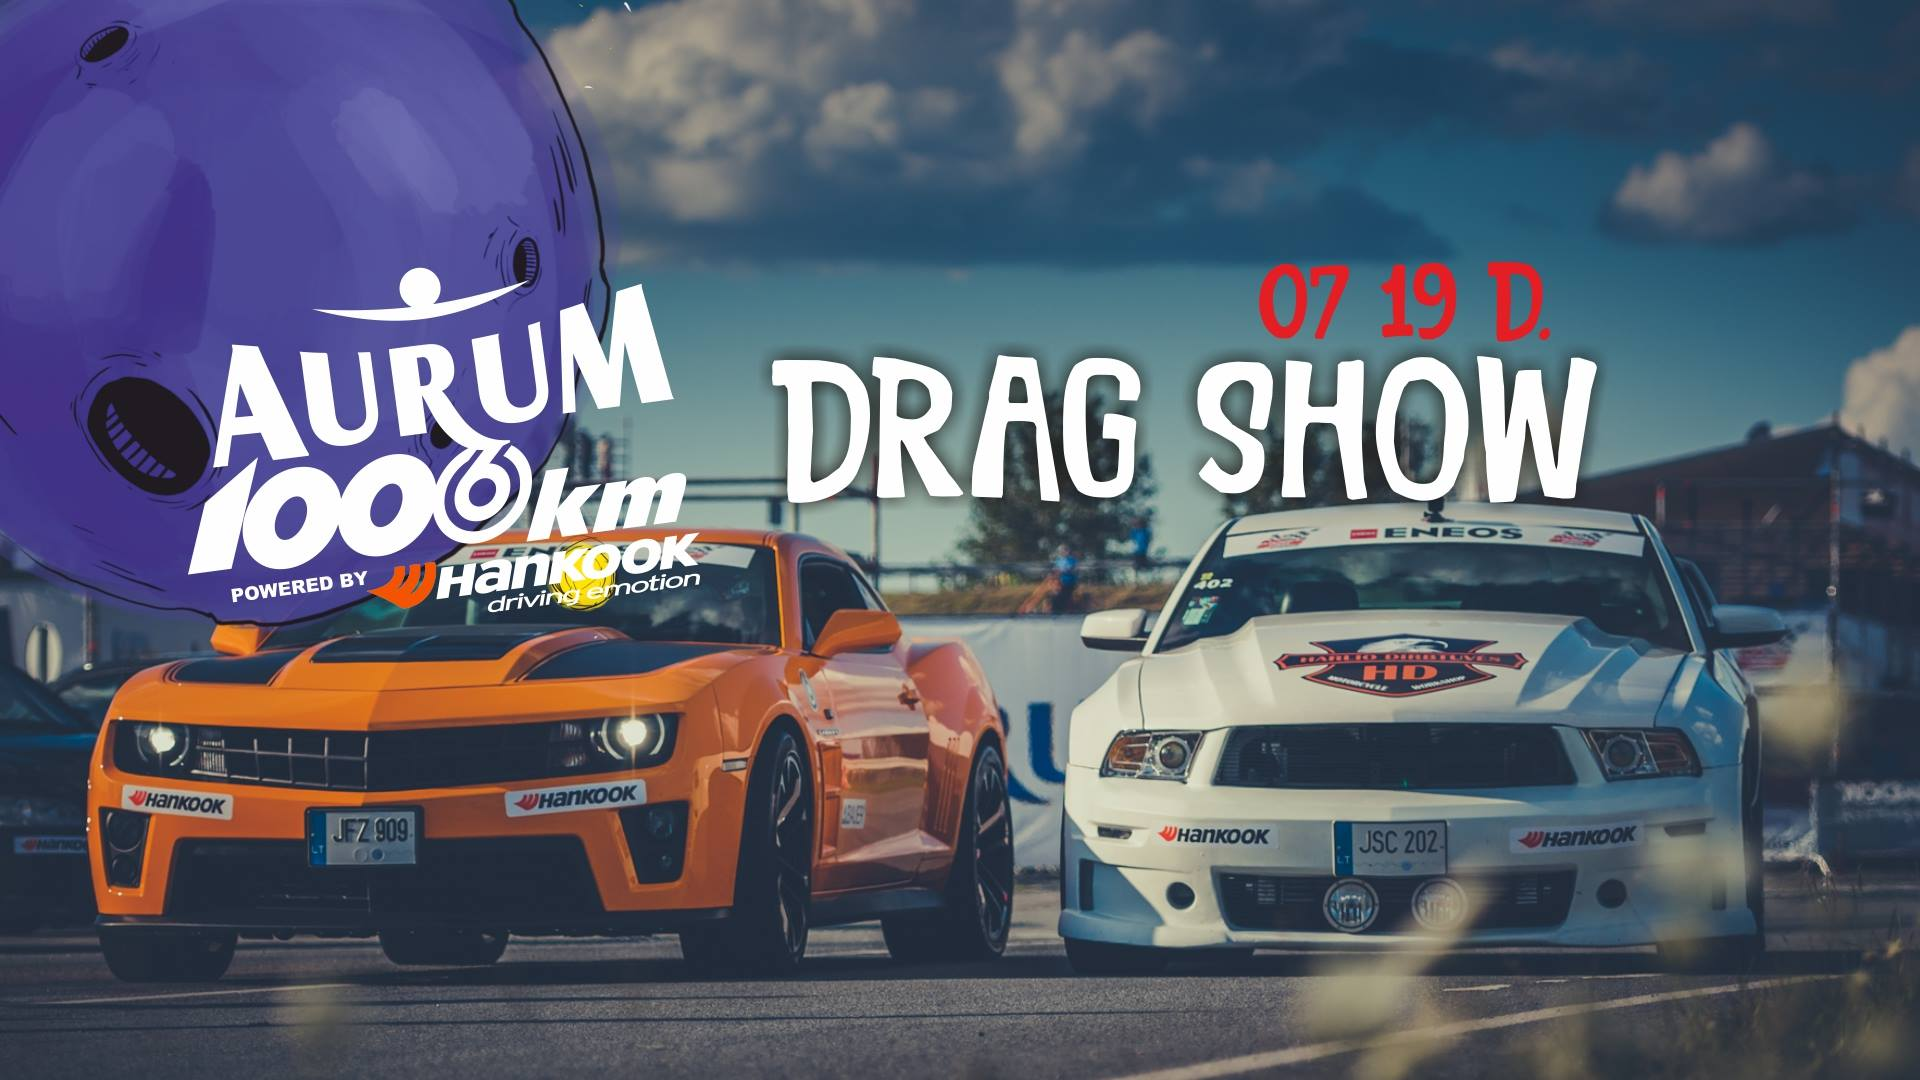 Drag Show Bracket // Aurum 1006 km powered by Hankook